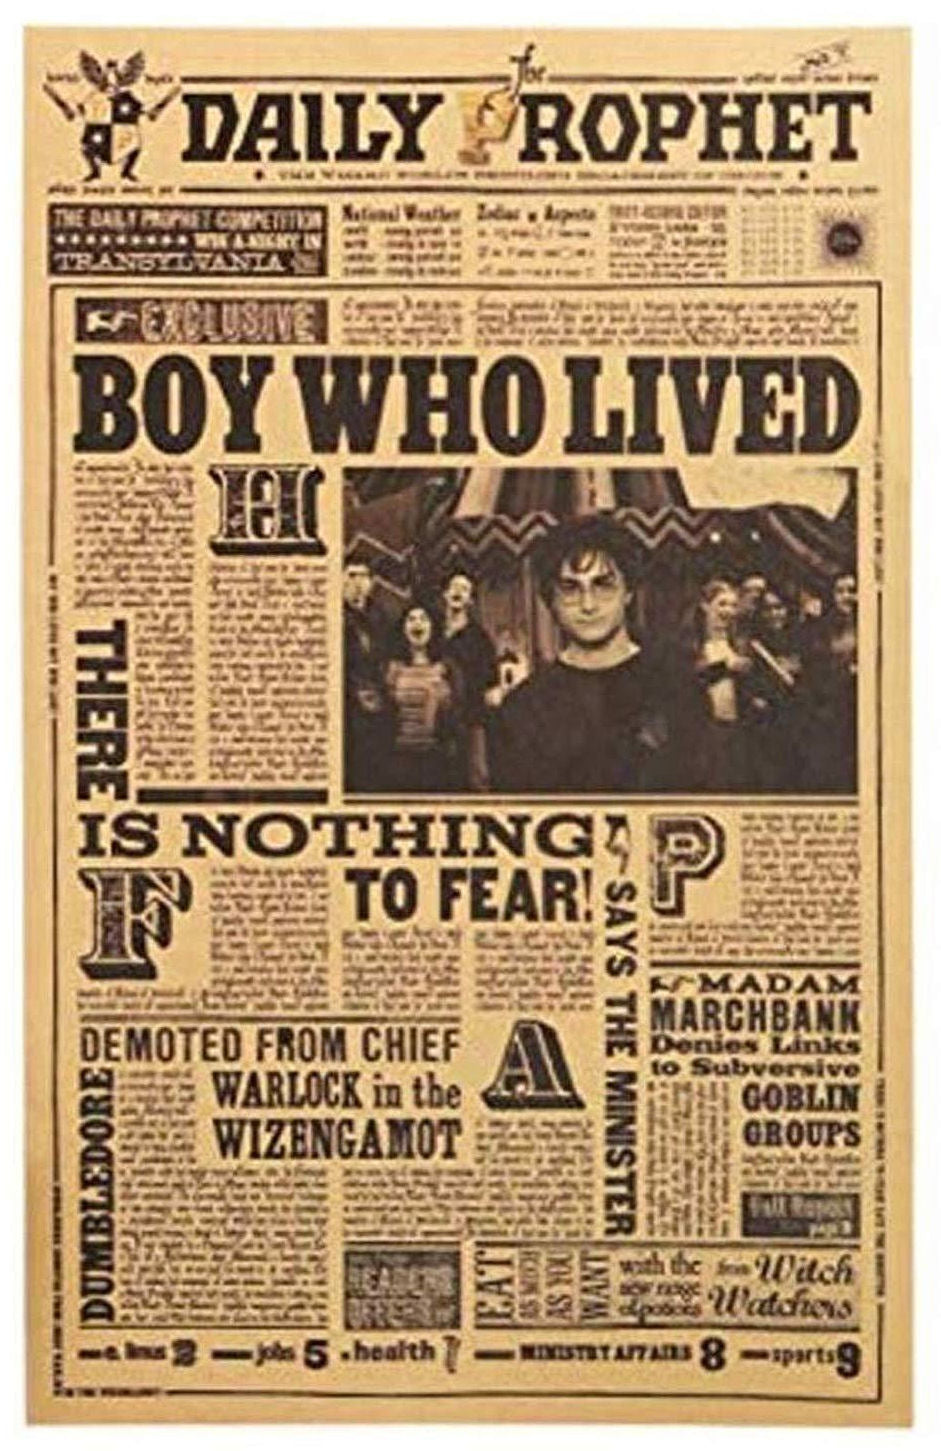 Harry Potter~Daily Prophet Poster~ Boy Who Lived